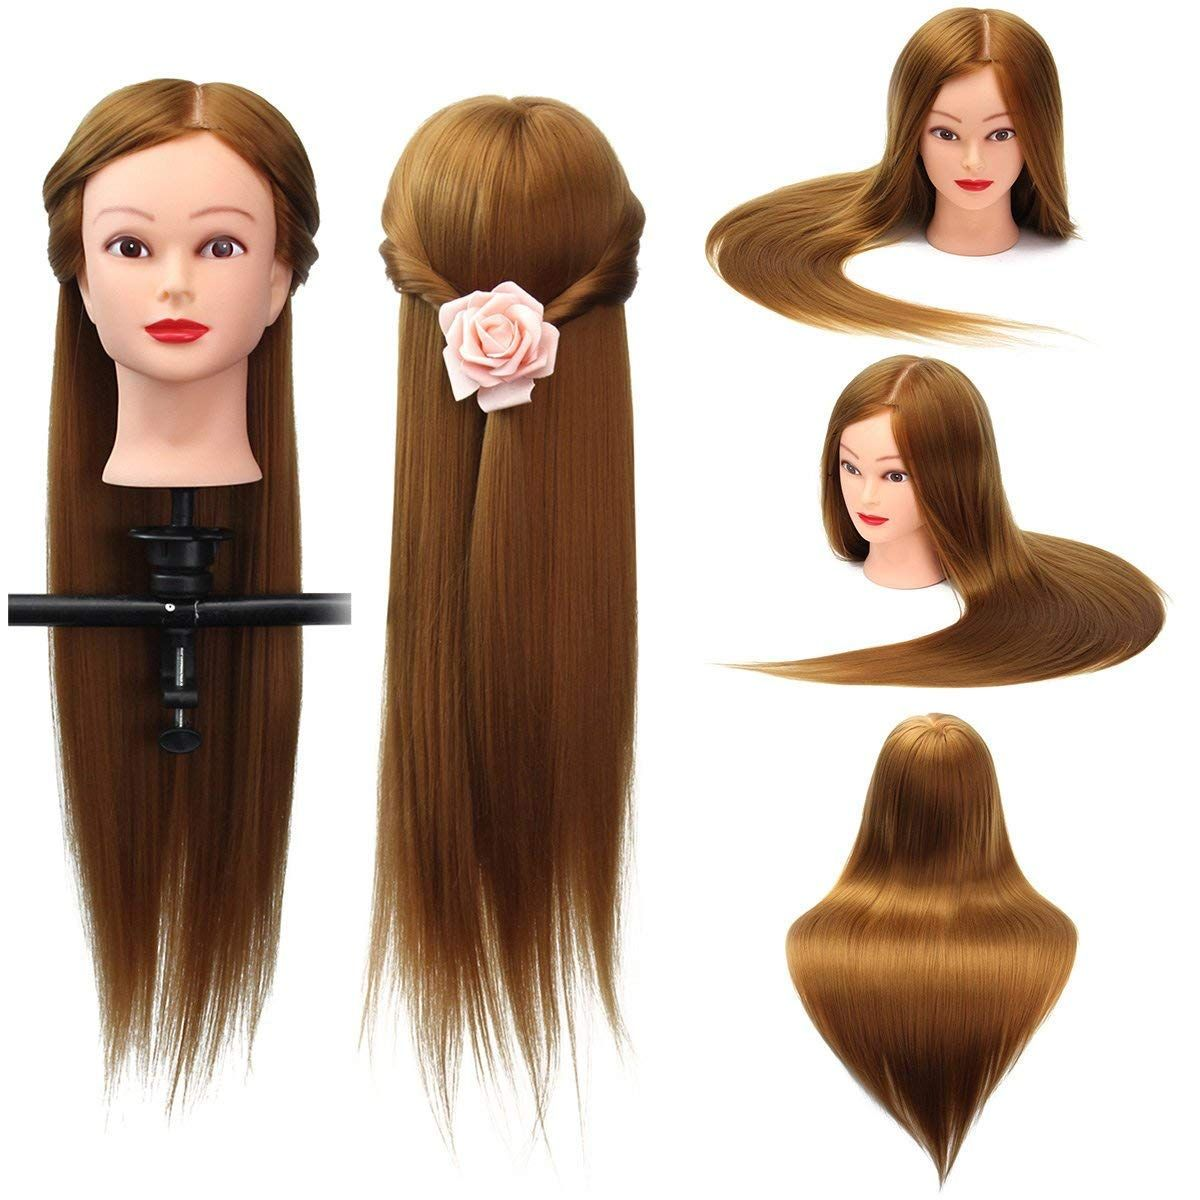 26 Light Brown 30 Human Hair Training Mannequin Head Model Hairdressing Makeup Practice With Clamp Hair Styling Tools Salon From Health Beauty On Banggood Hair Mannequin Human Hair Light